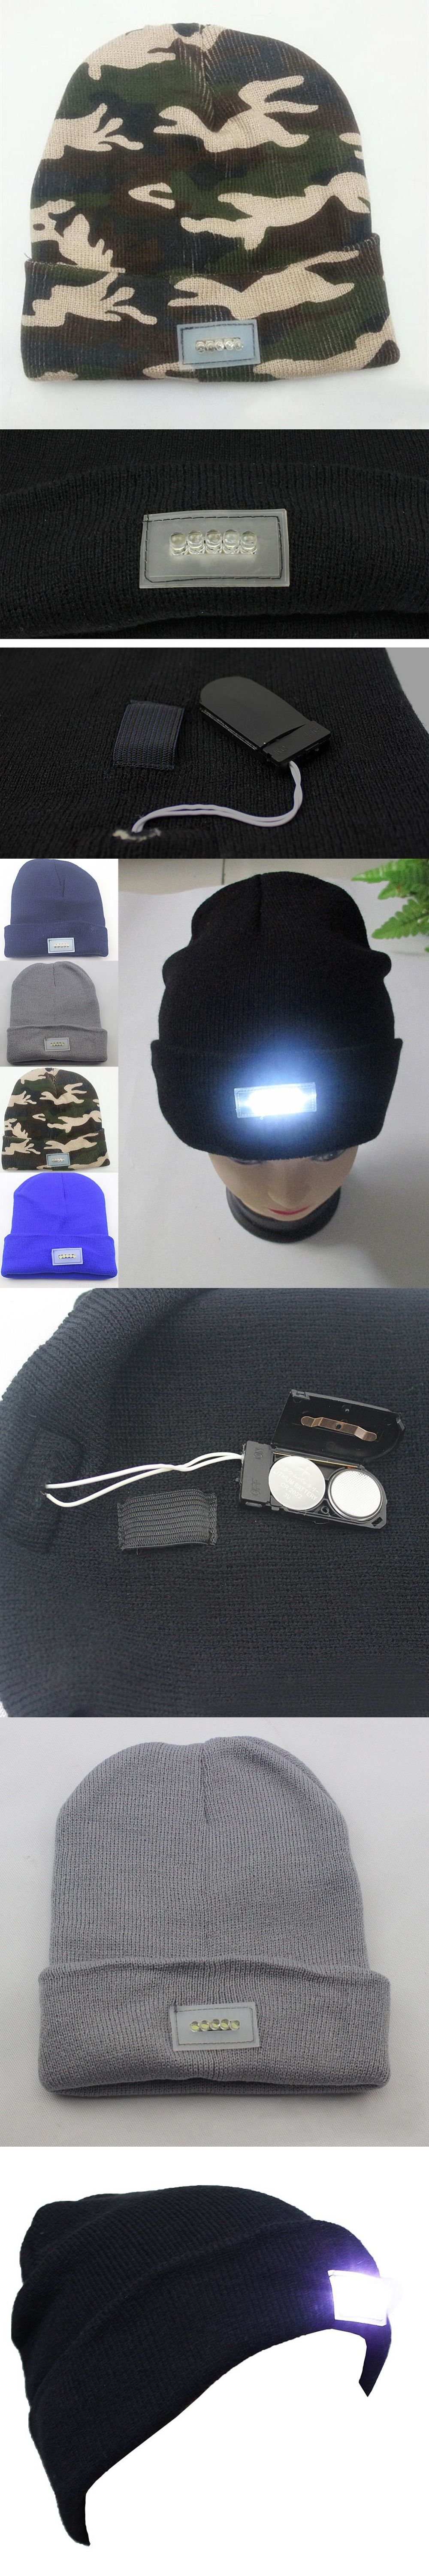 4cbea9be0c3 Pack of 1pcs NEW 5 LED Unisex Lighted Beanie Winter Warm Power Knit Cap Hat  for